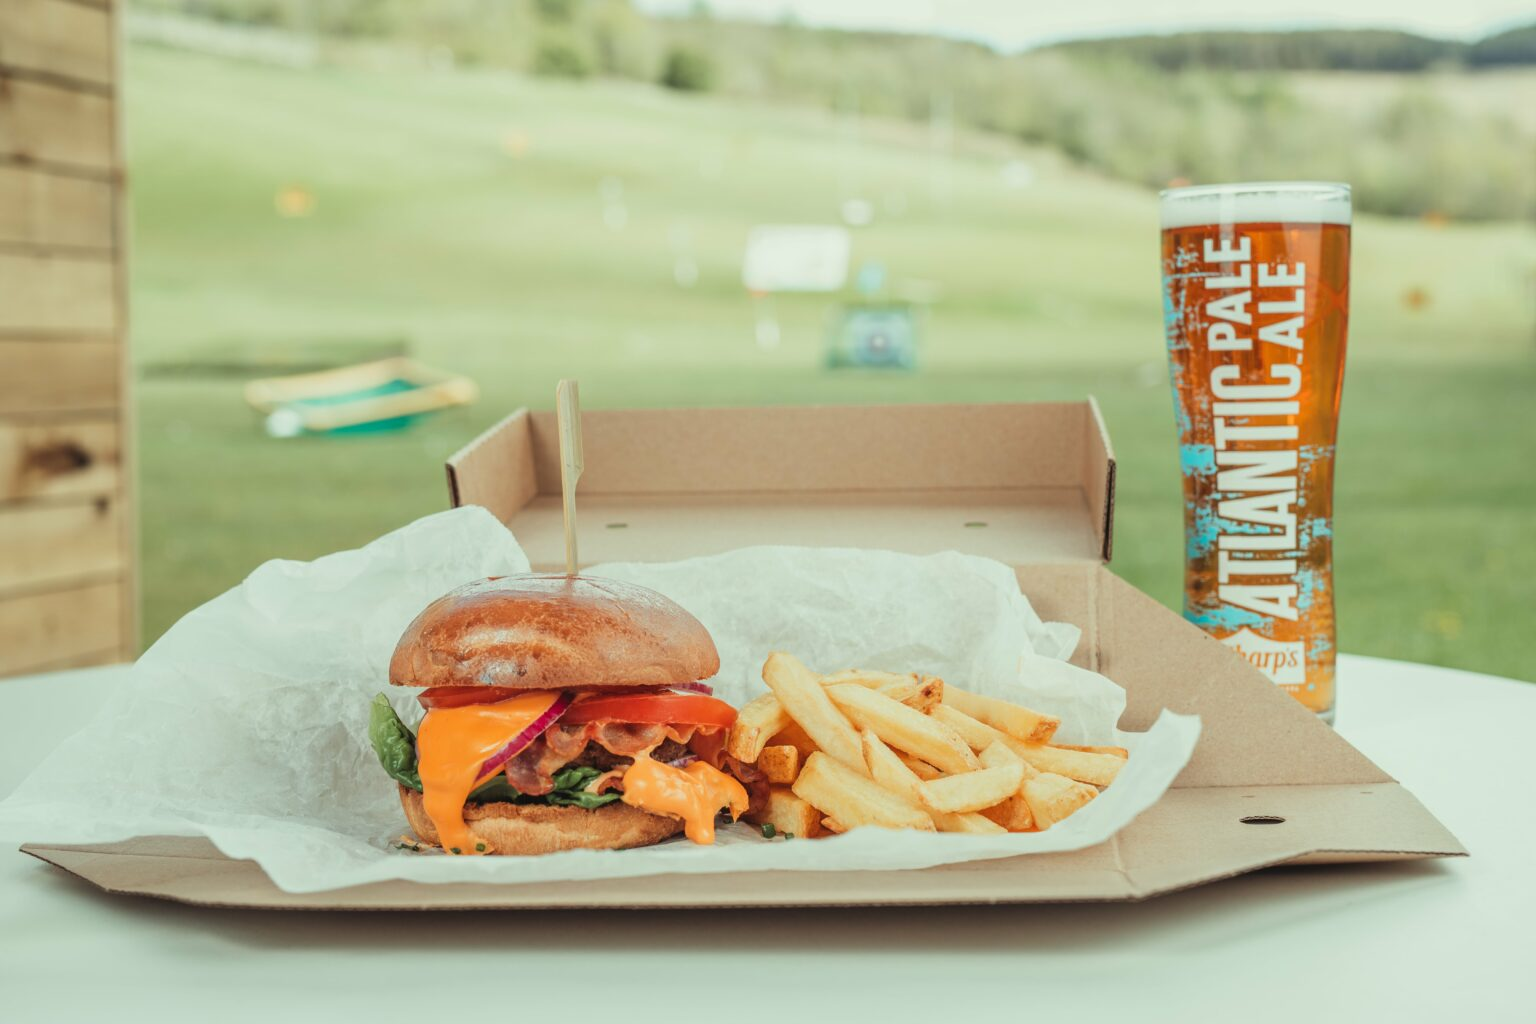 American Golf burger and chips